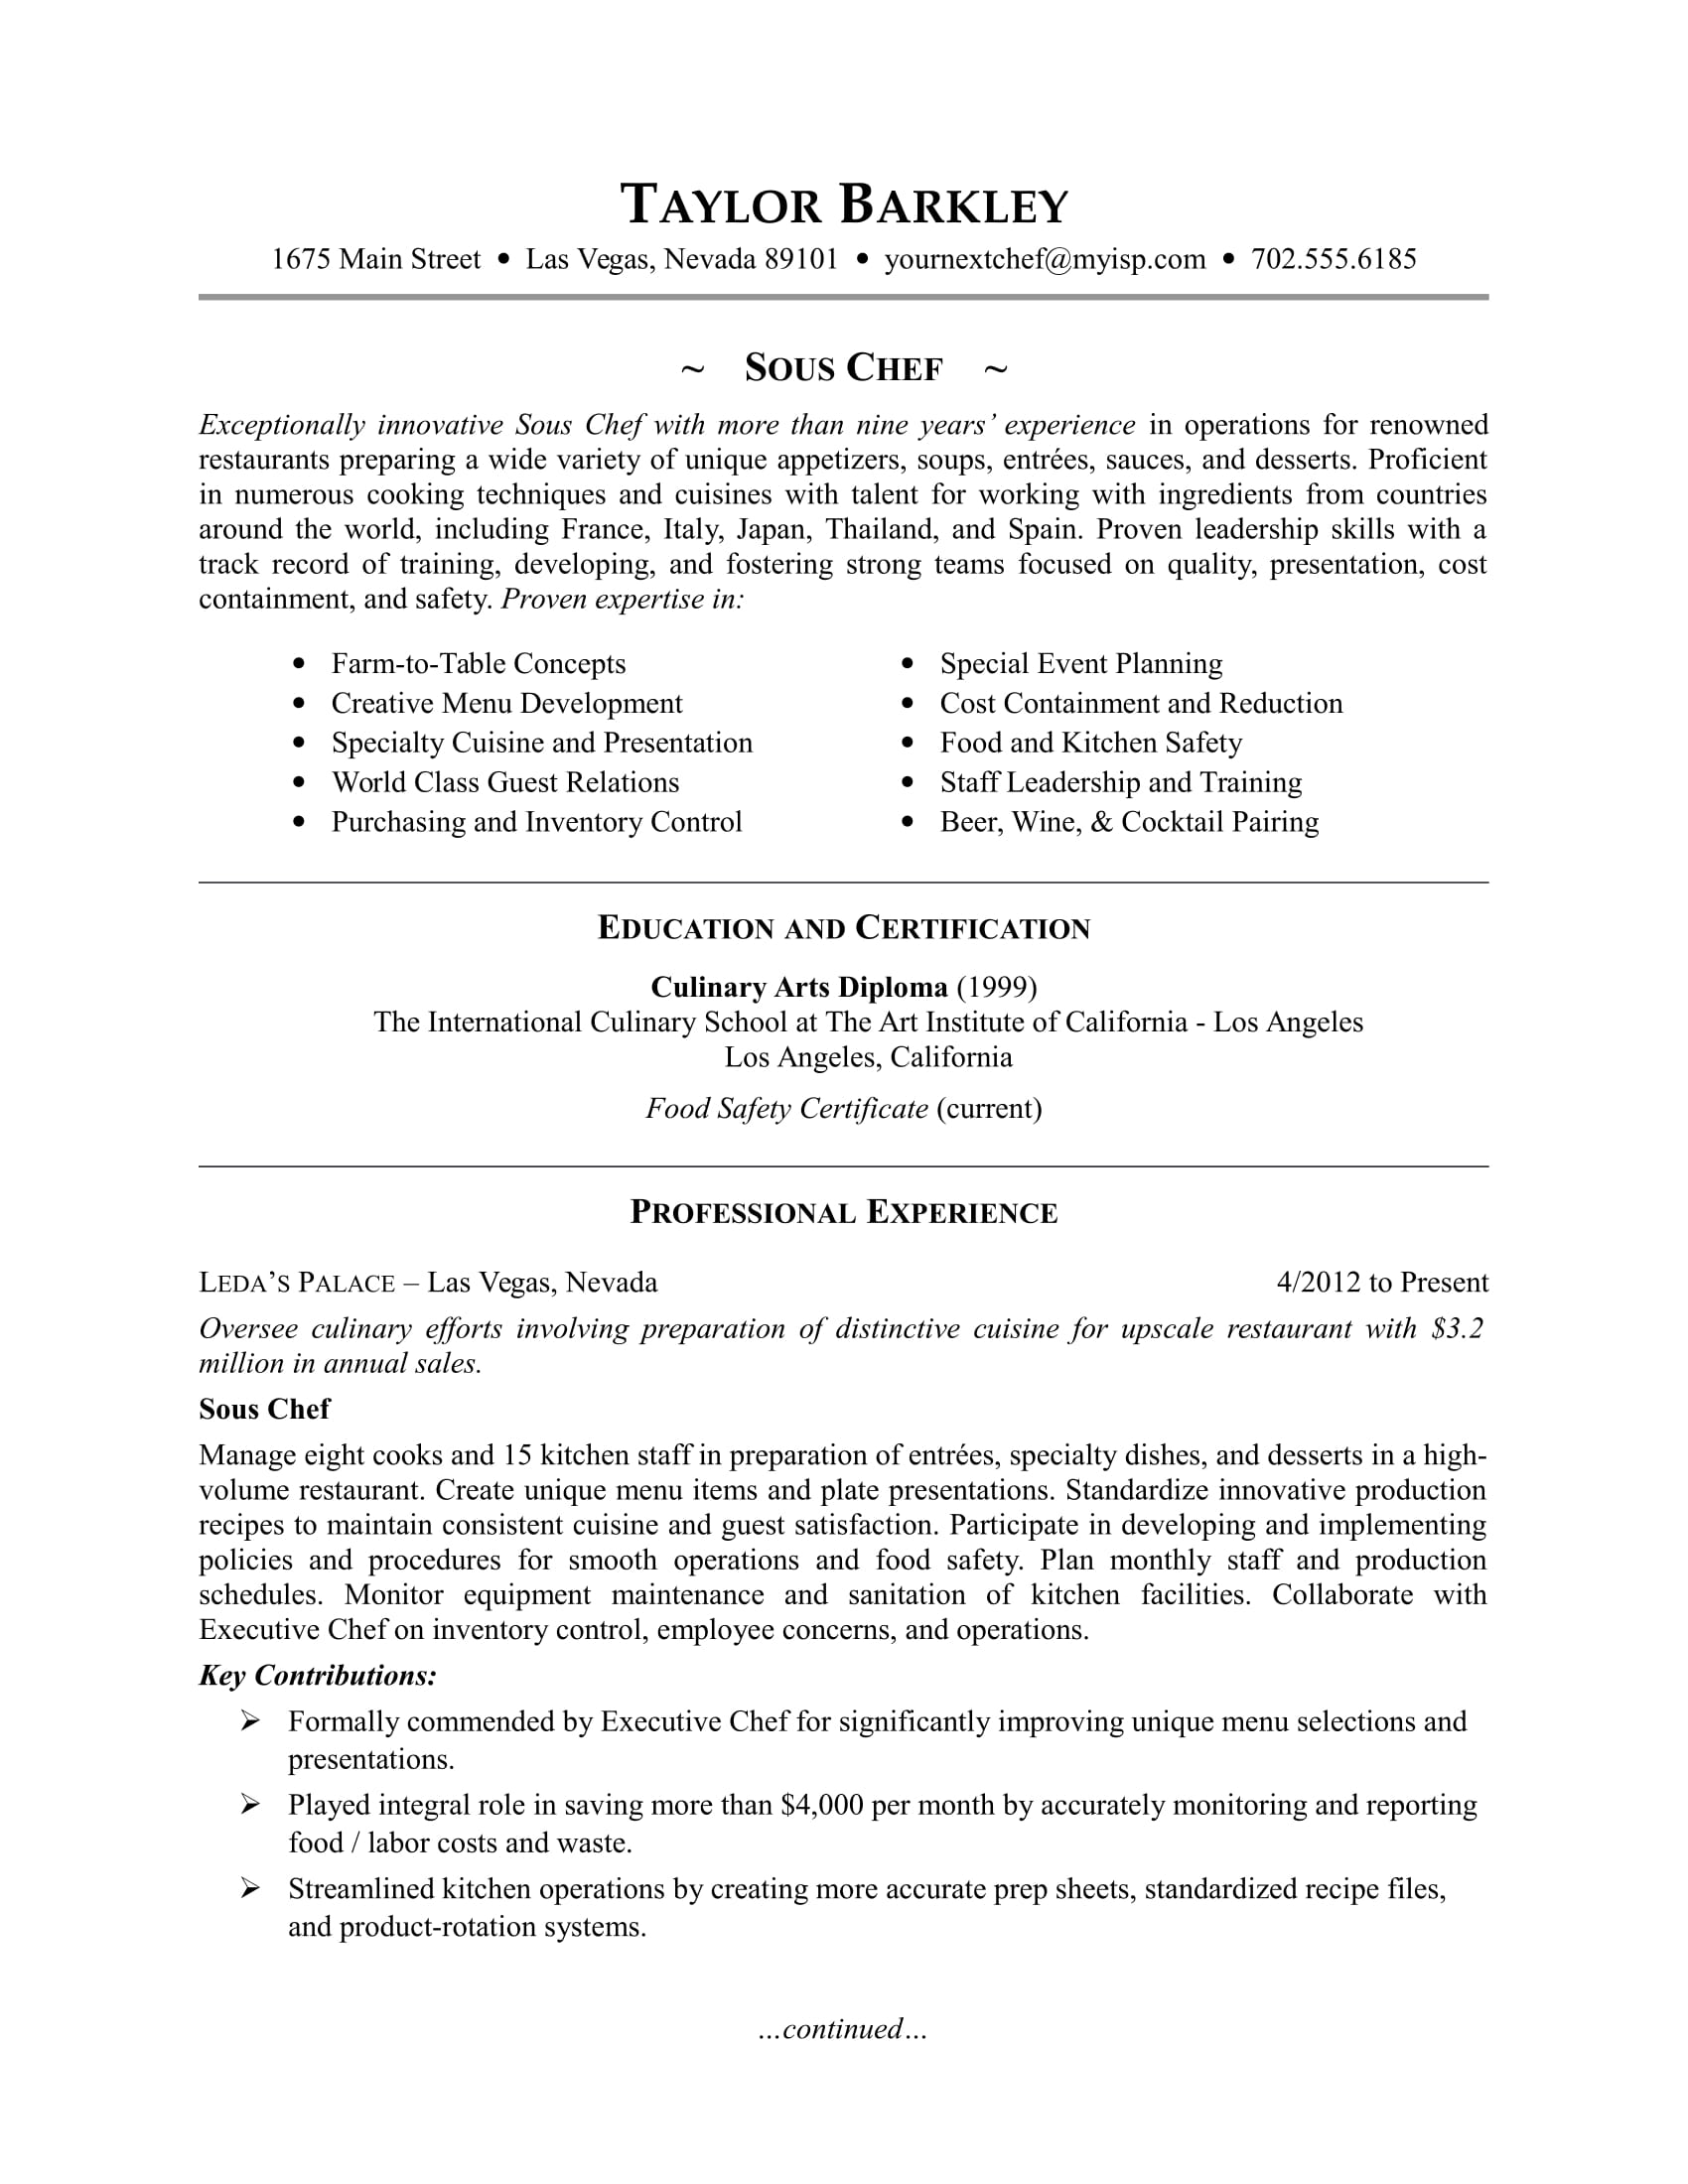 sample resume for a sous chef - Cook Resume Examples